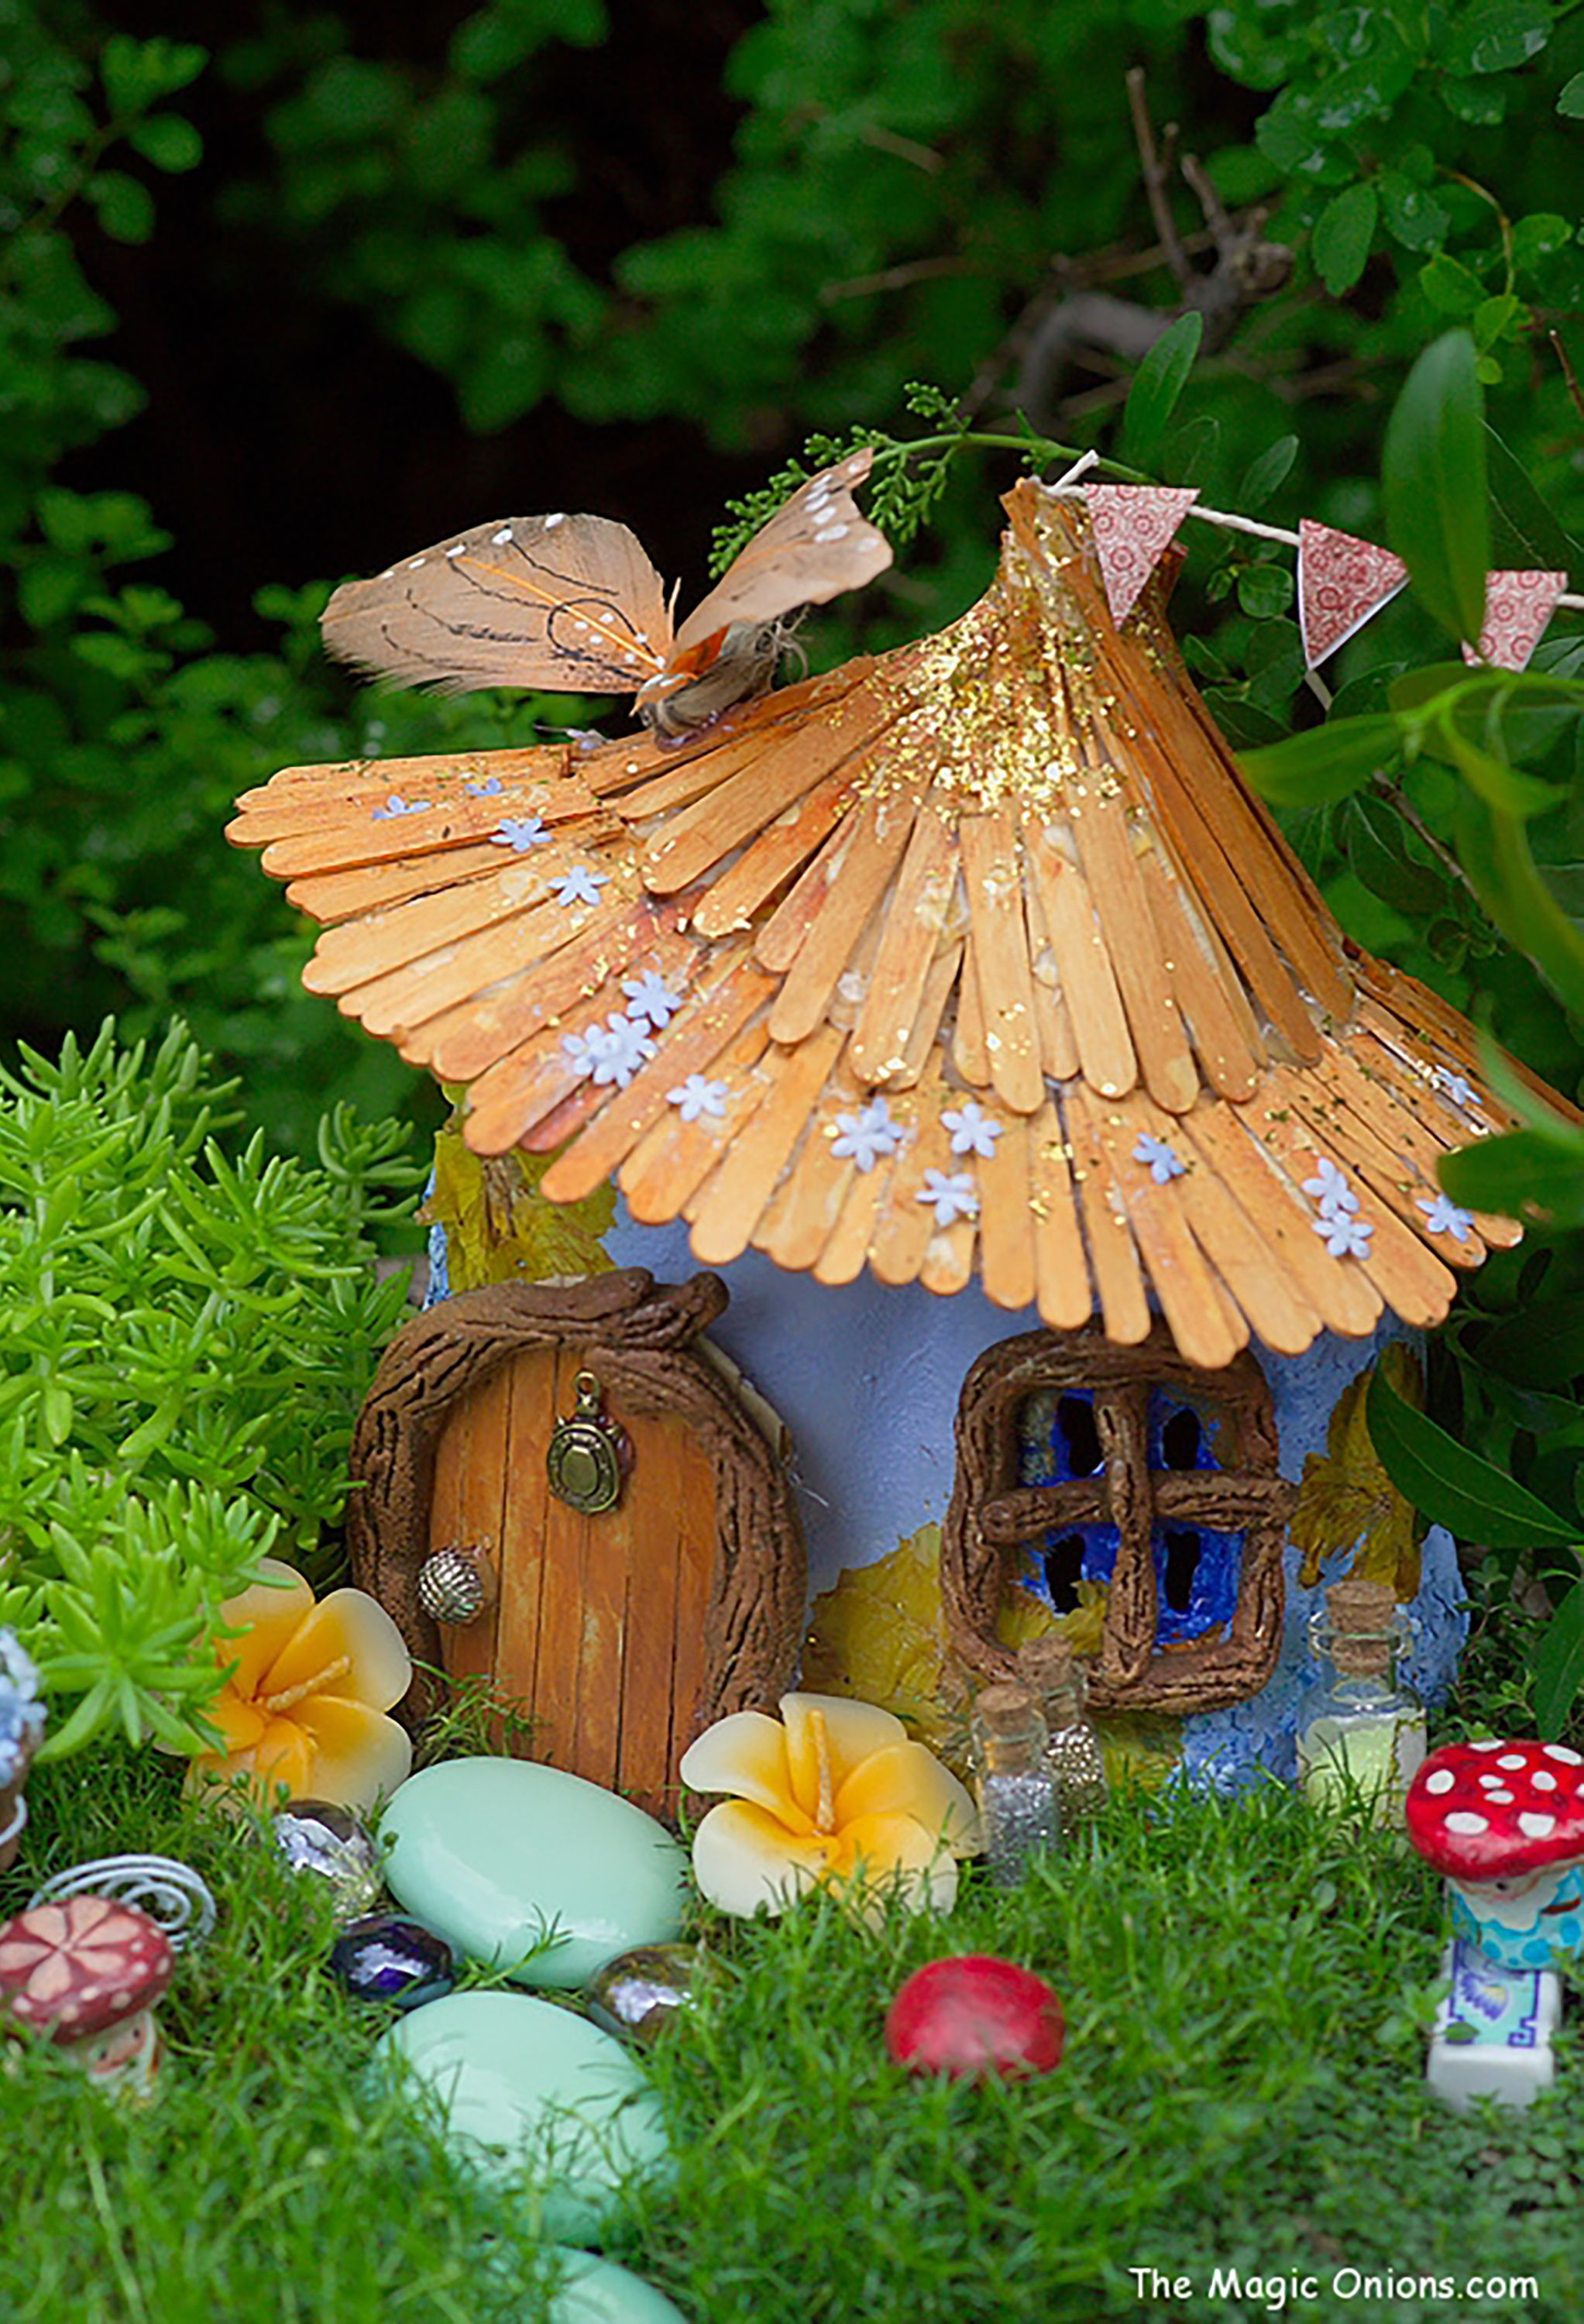 Genial Diy Fairy Garden Ideas